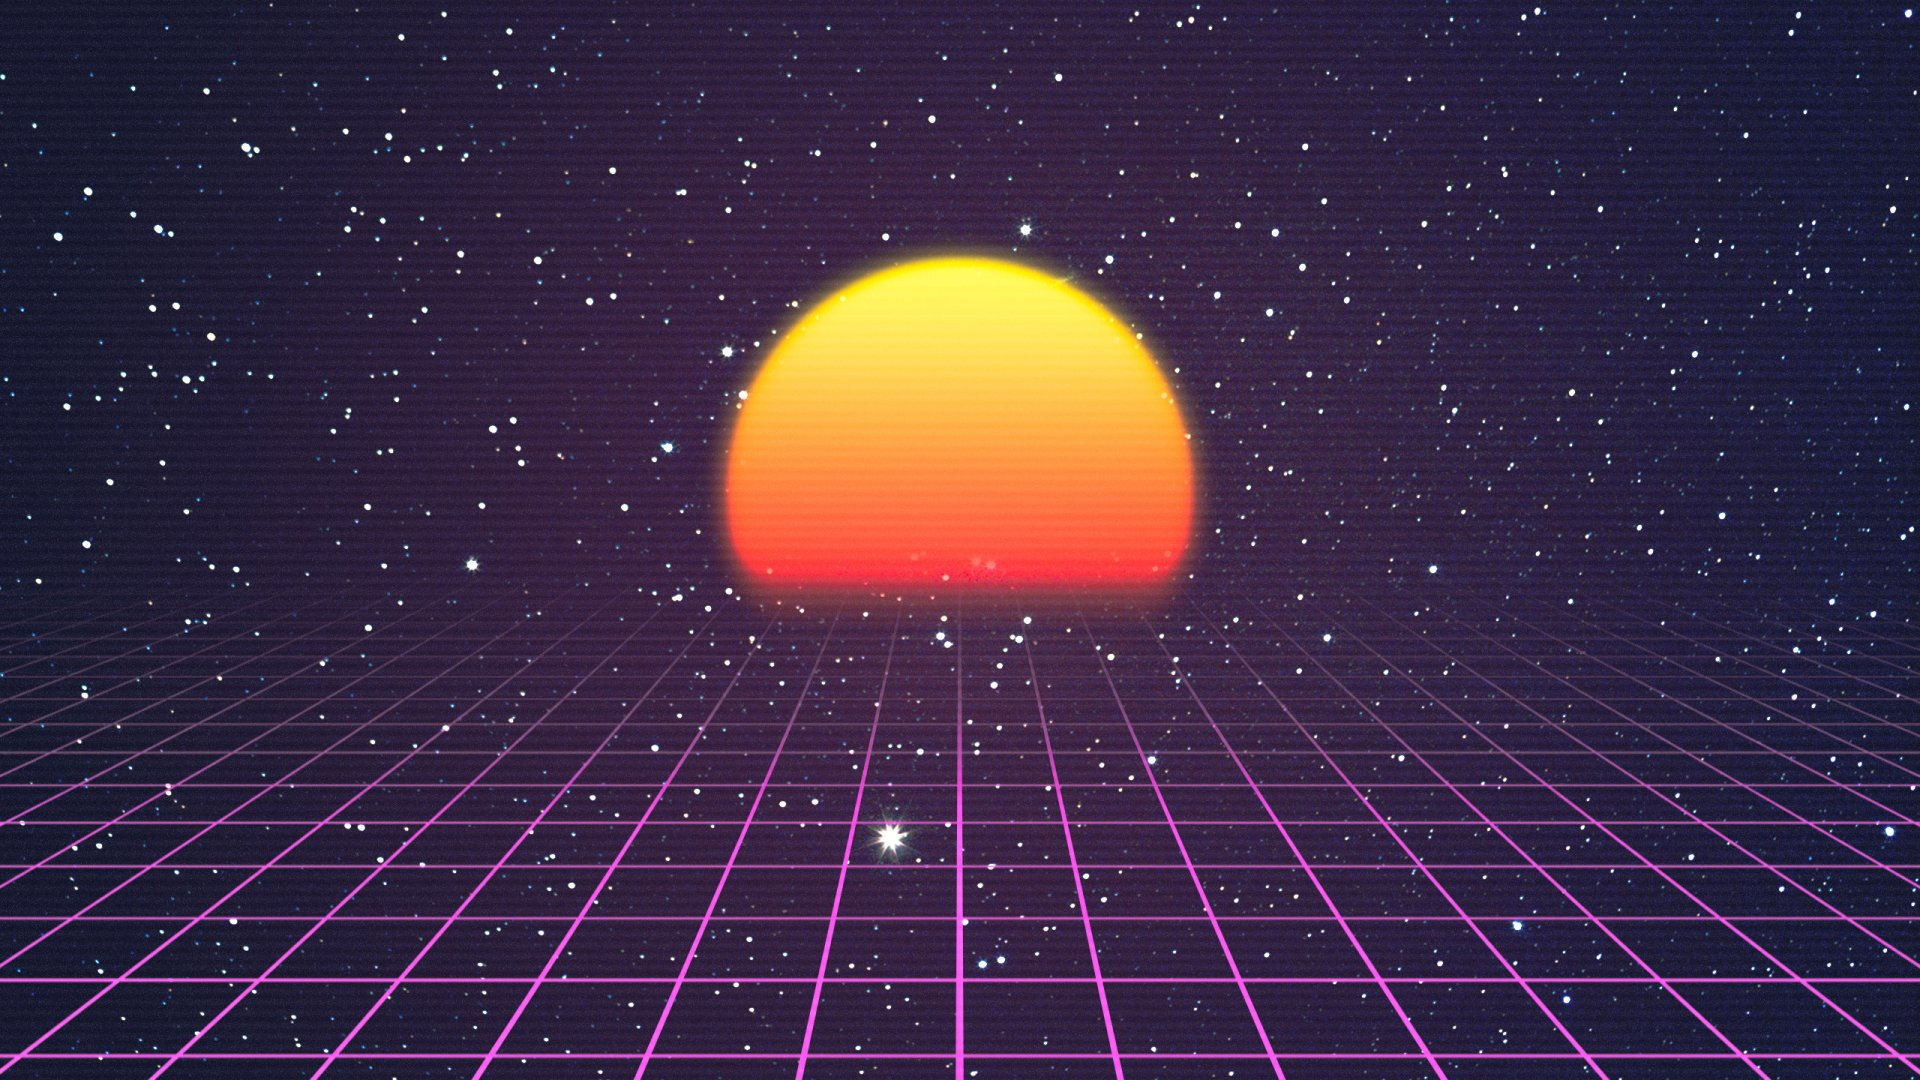 Retro wave hd wallpaper background image 2560x1440 - Space 80s wallpaper ...